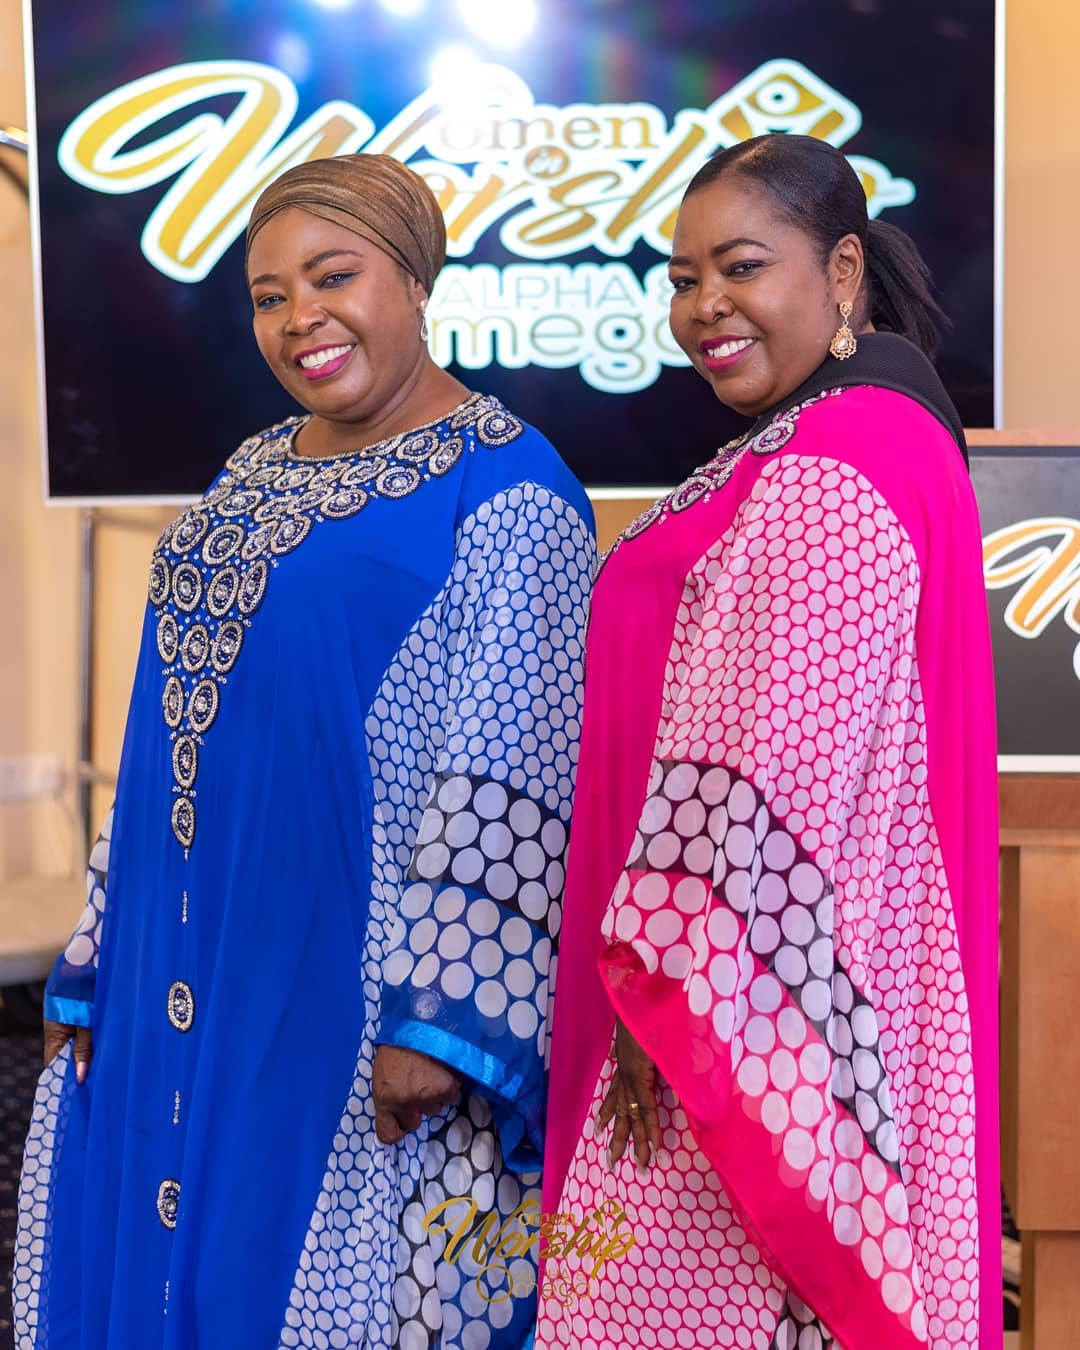 Gospel Hypers -Ghana Gospel Music - Women in worship 2020